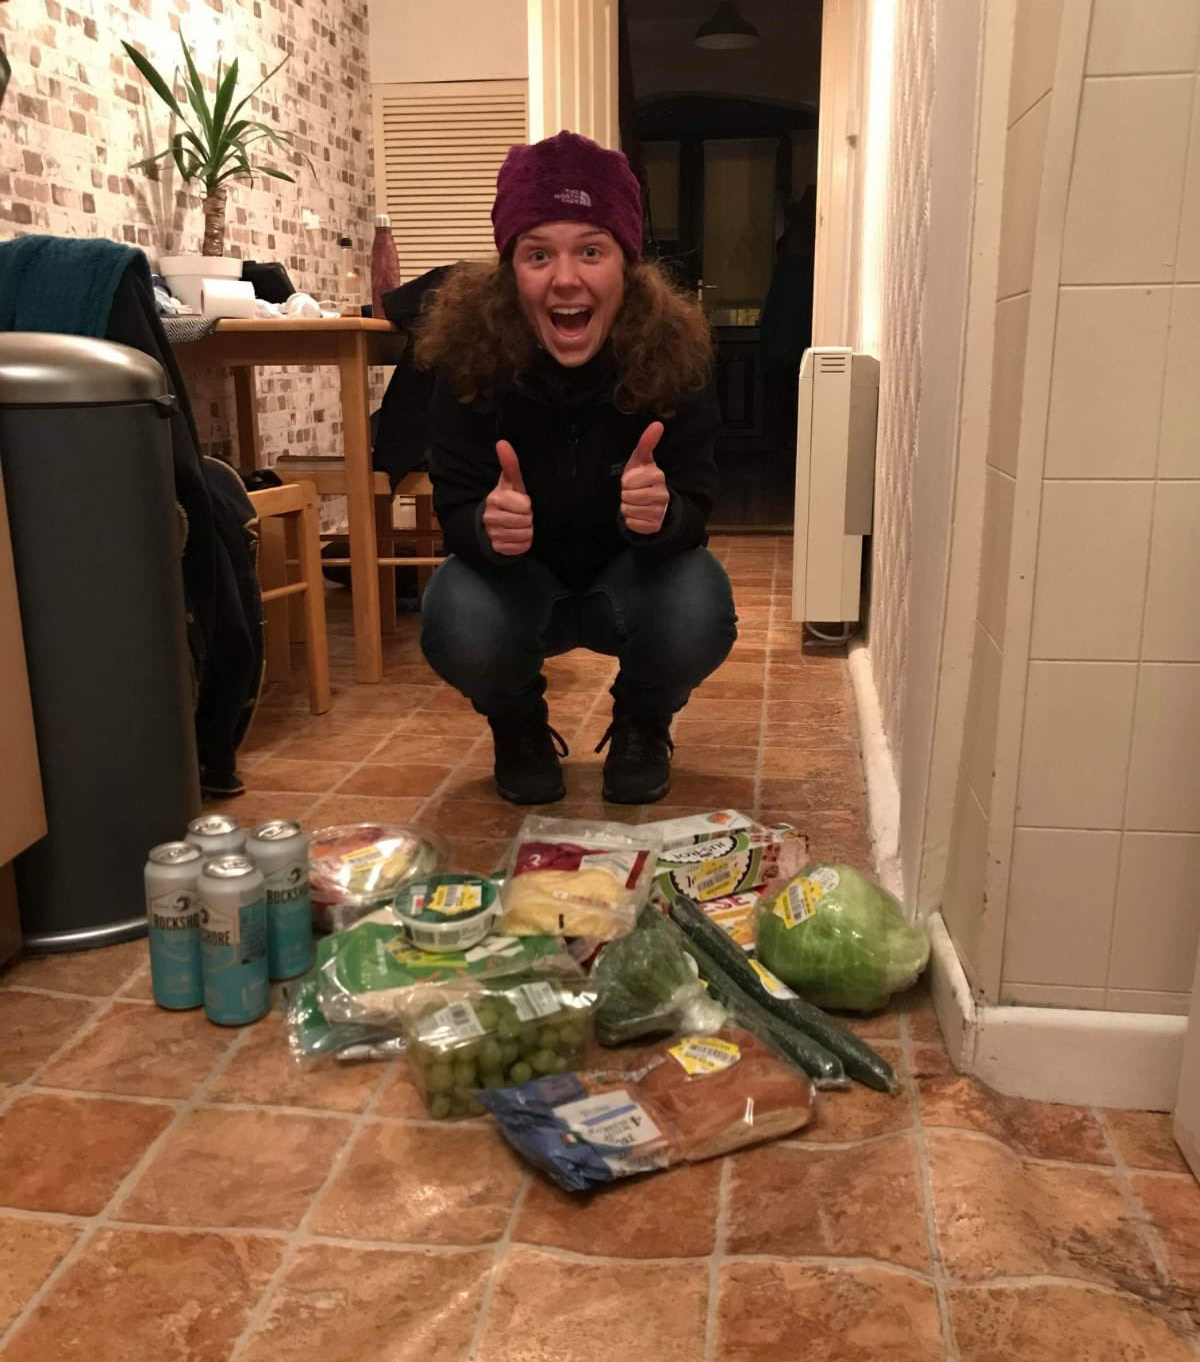 Henry McKean goes dumpster diving with Caitlin Weich. Image: Newstalk